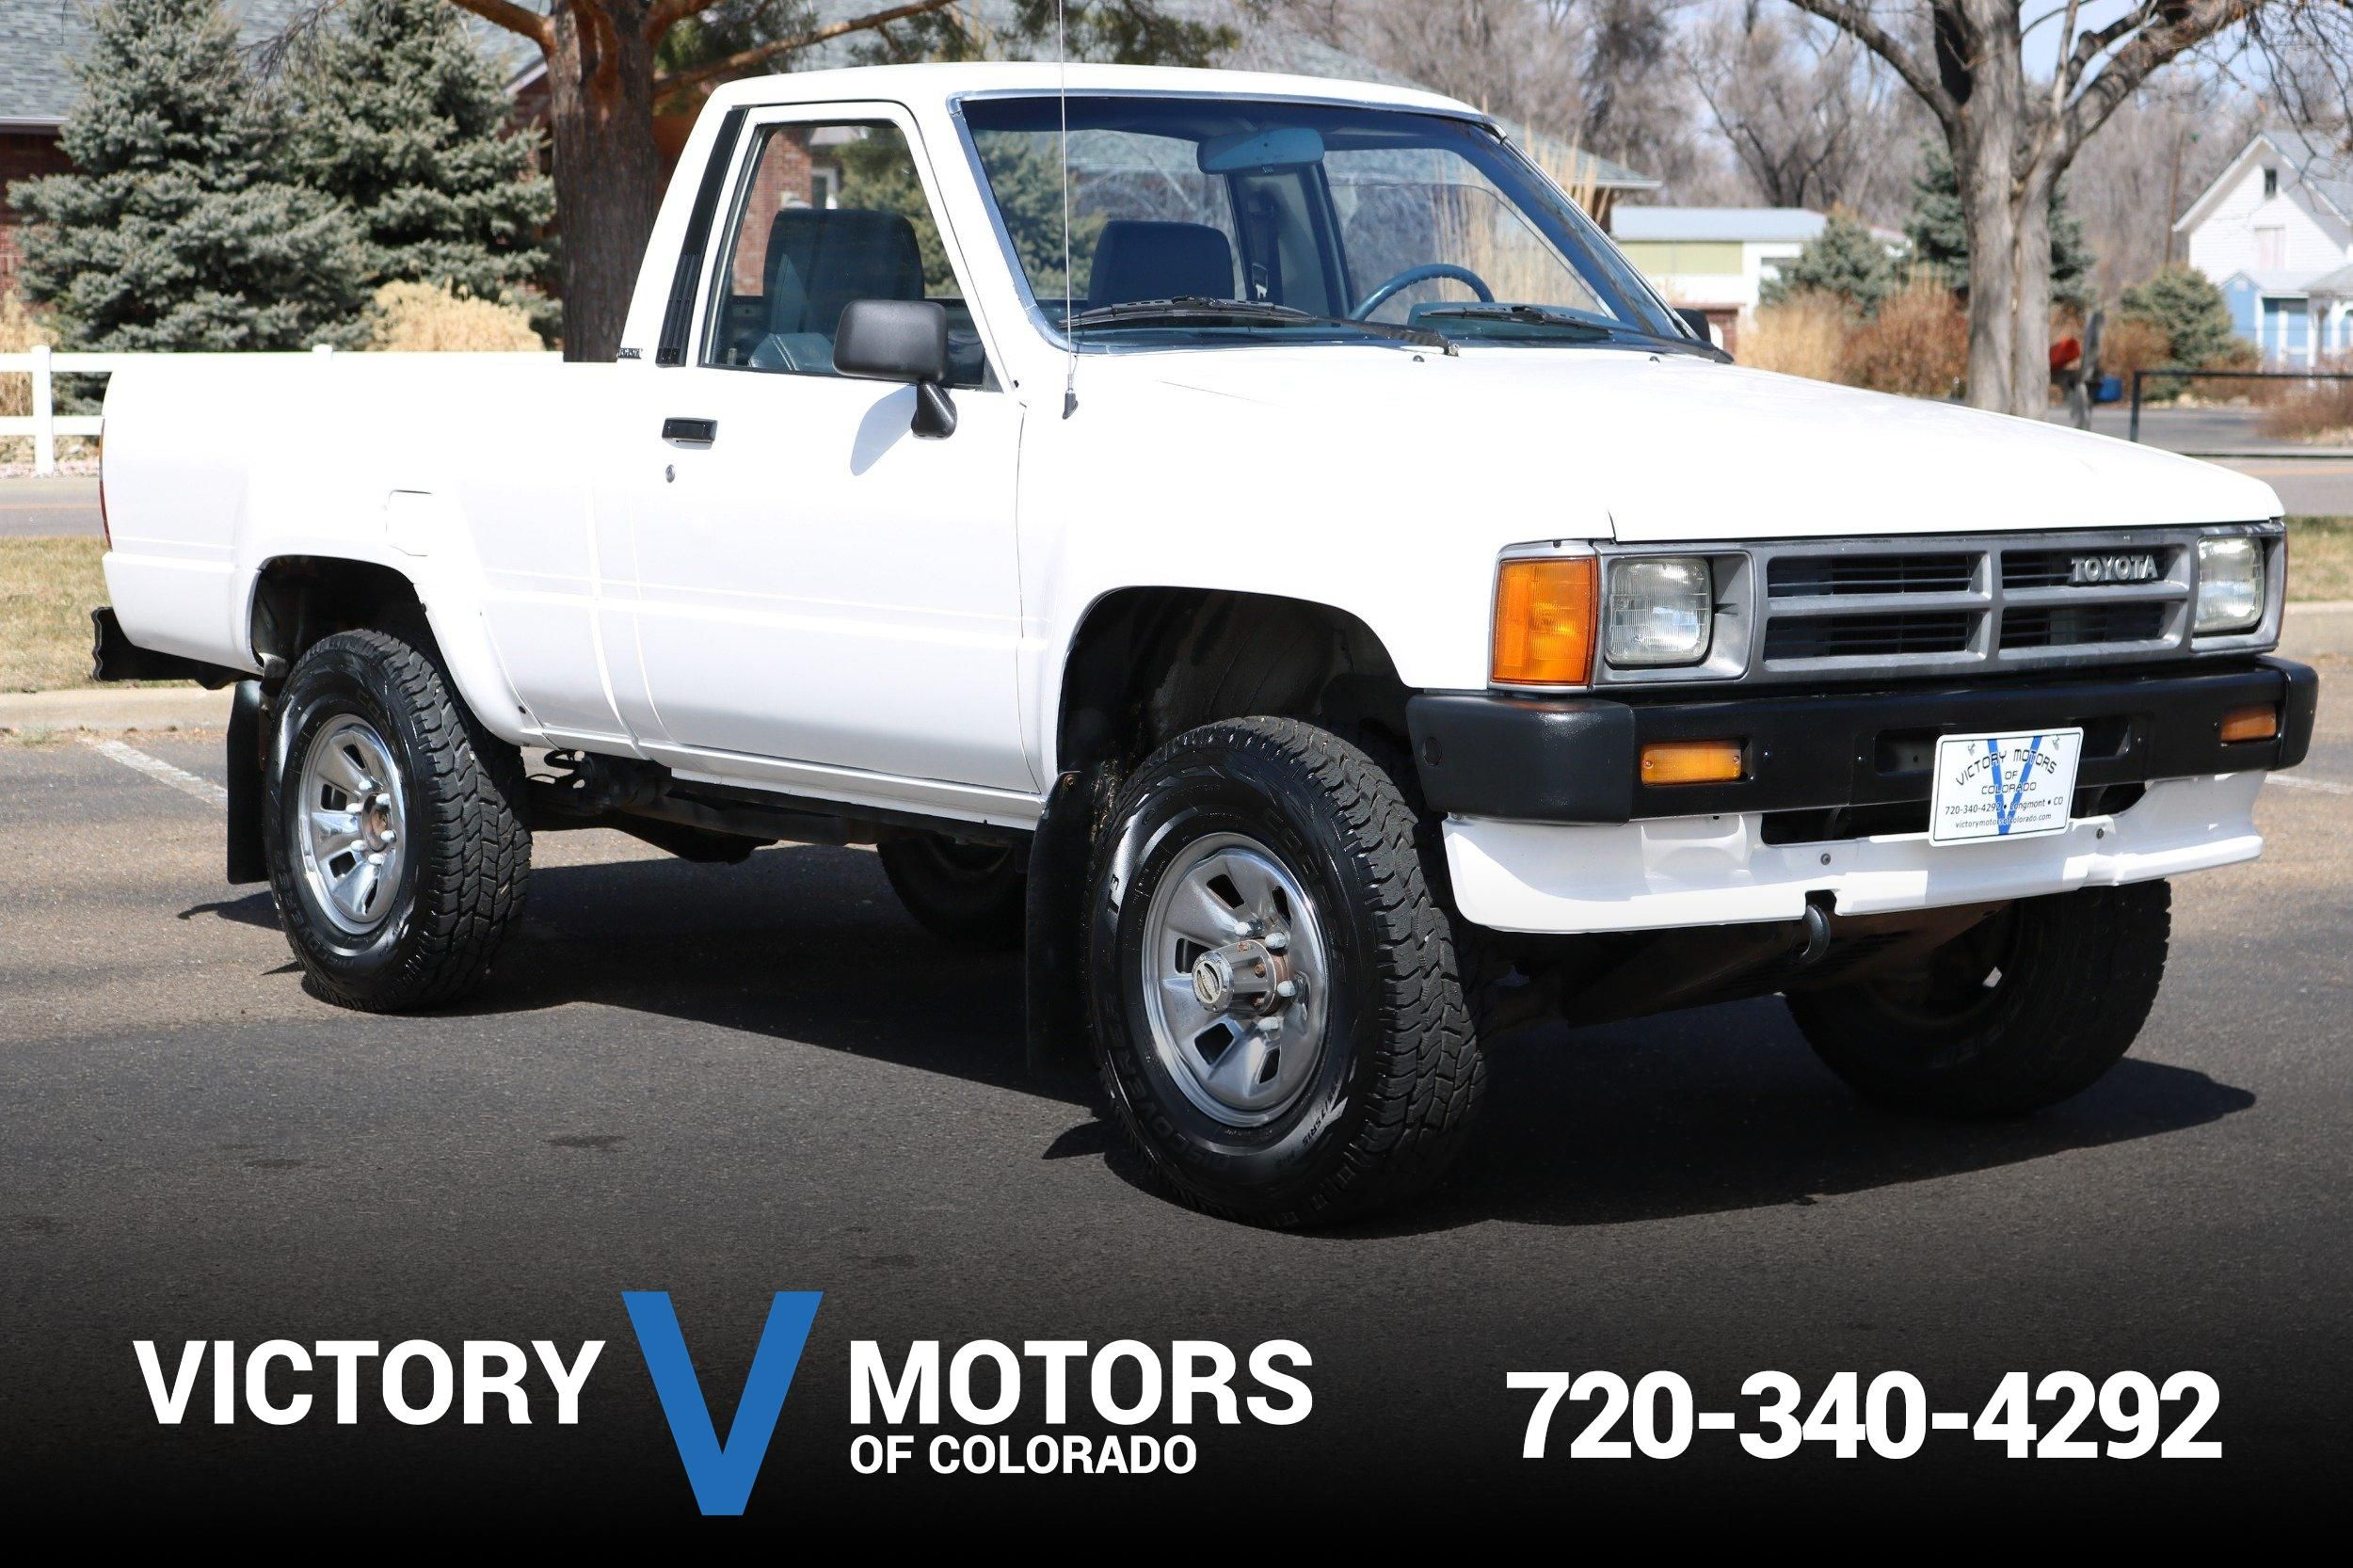 1987 Toyota Pickup 4wd Victory Motors Of Colorado